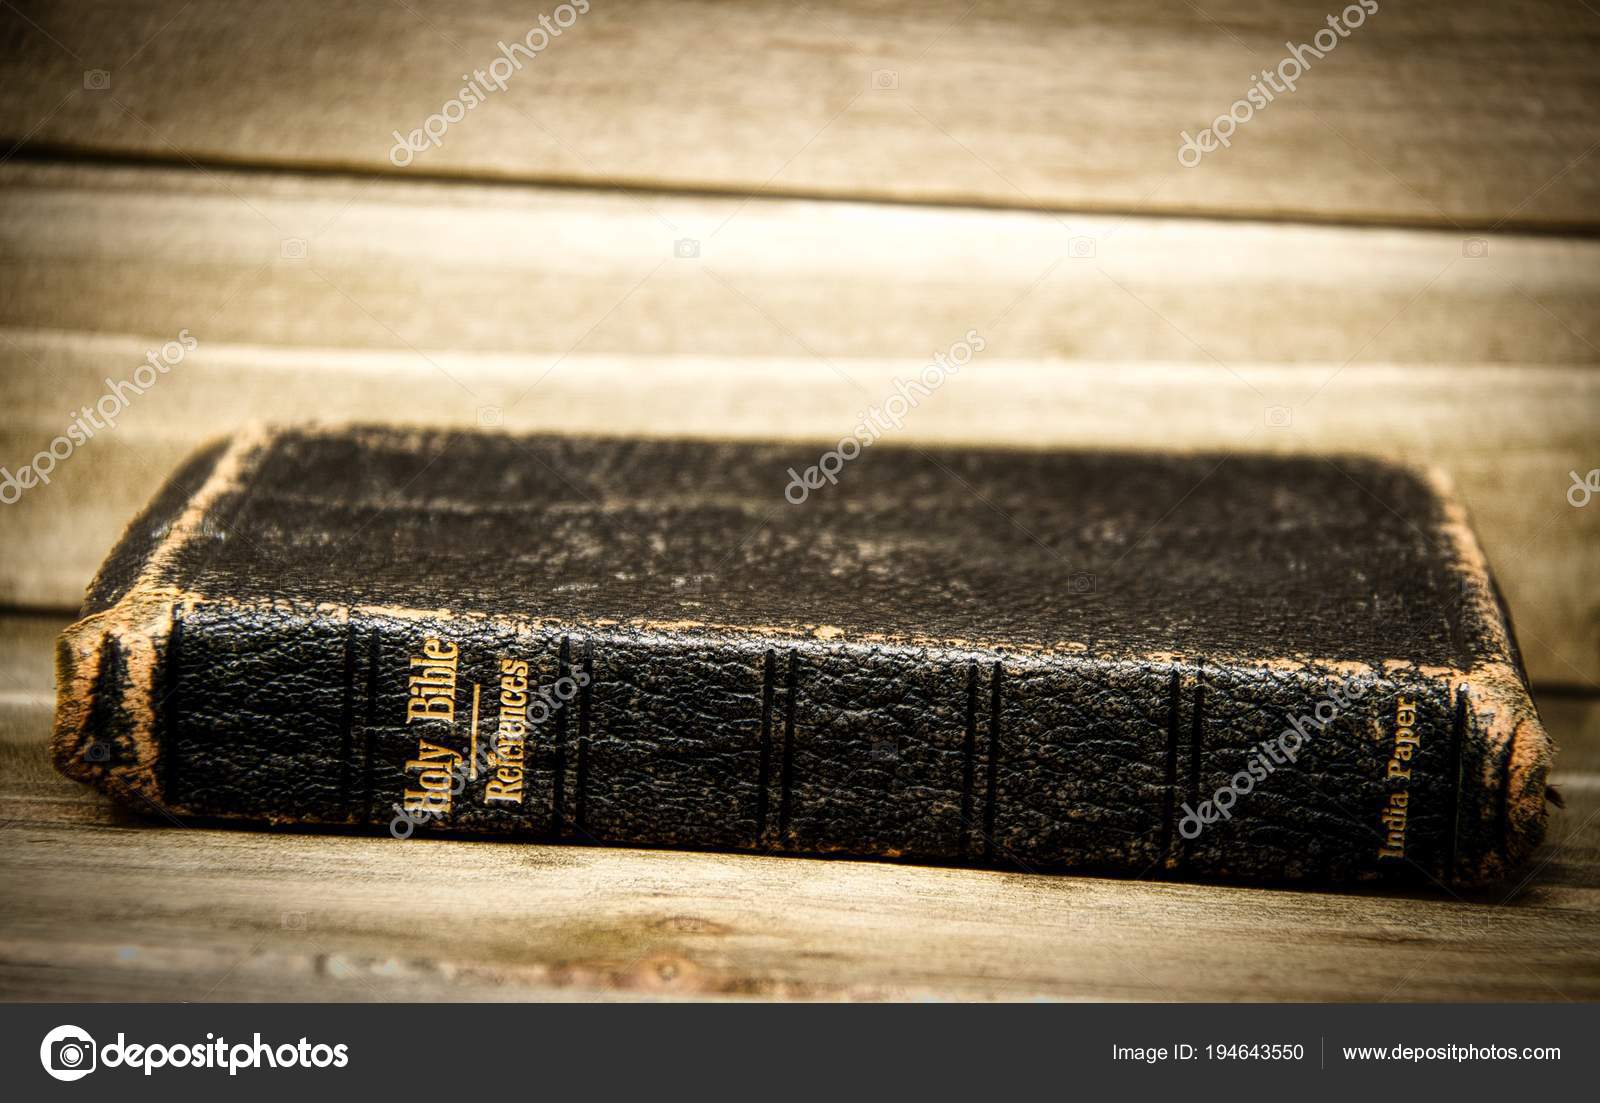 Bible Resting Its Side Wooden Table Only Spine Focus Slight